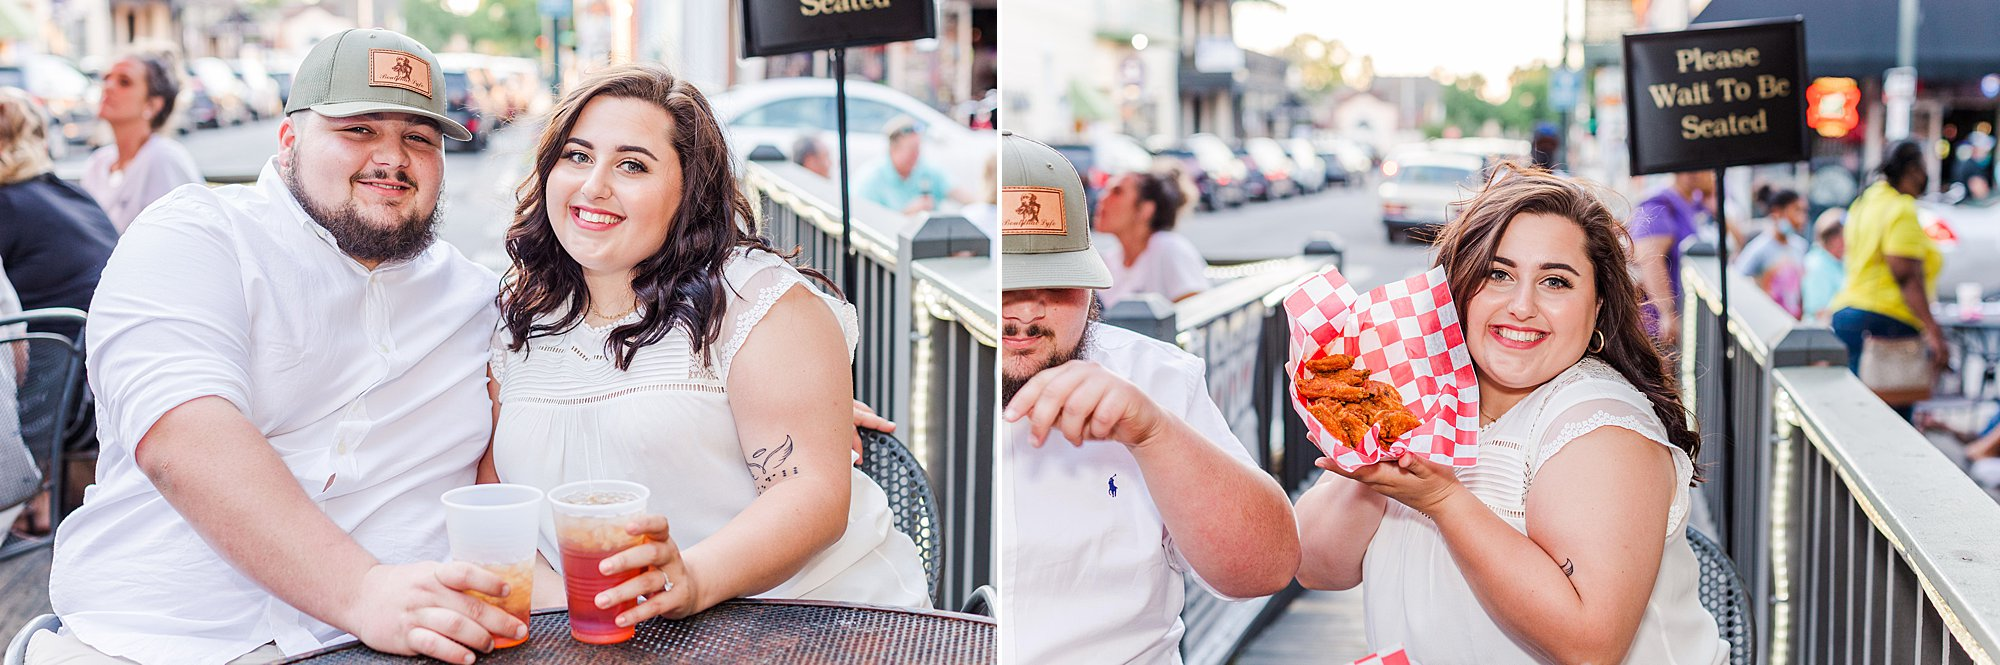 Engaged couple enjoying wings at Heros for their Engagement Session in Downtown Mobile, Alabama